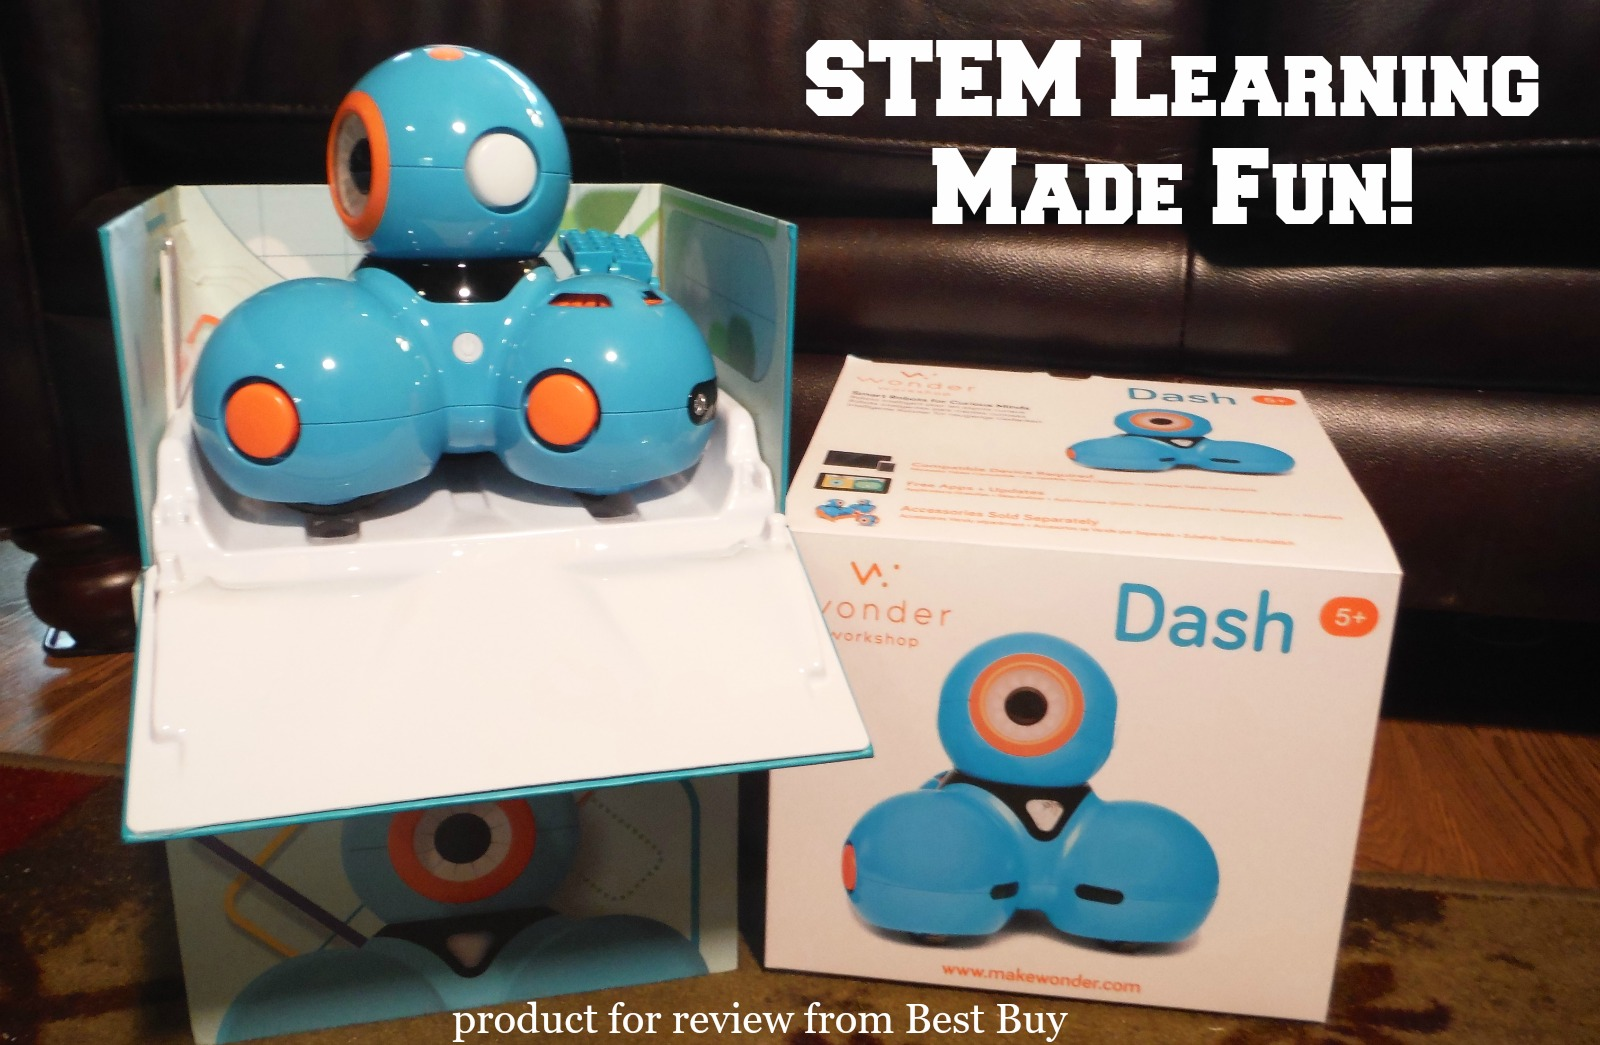 STEM Learning Made Fun DASH review